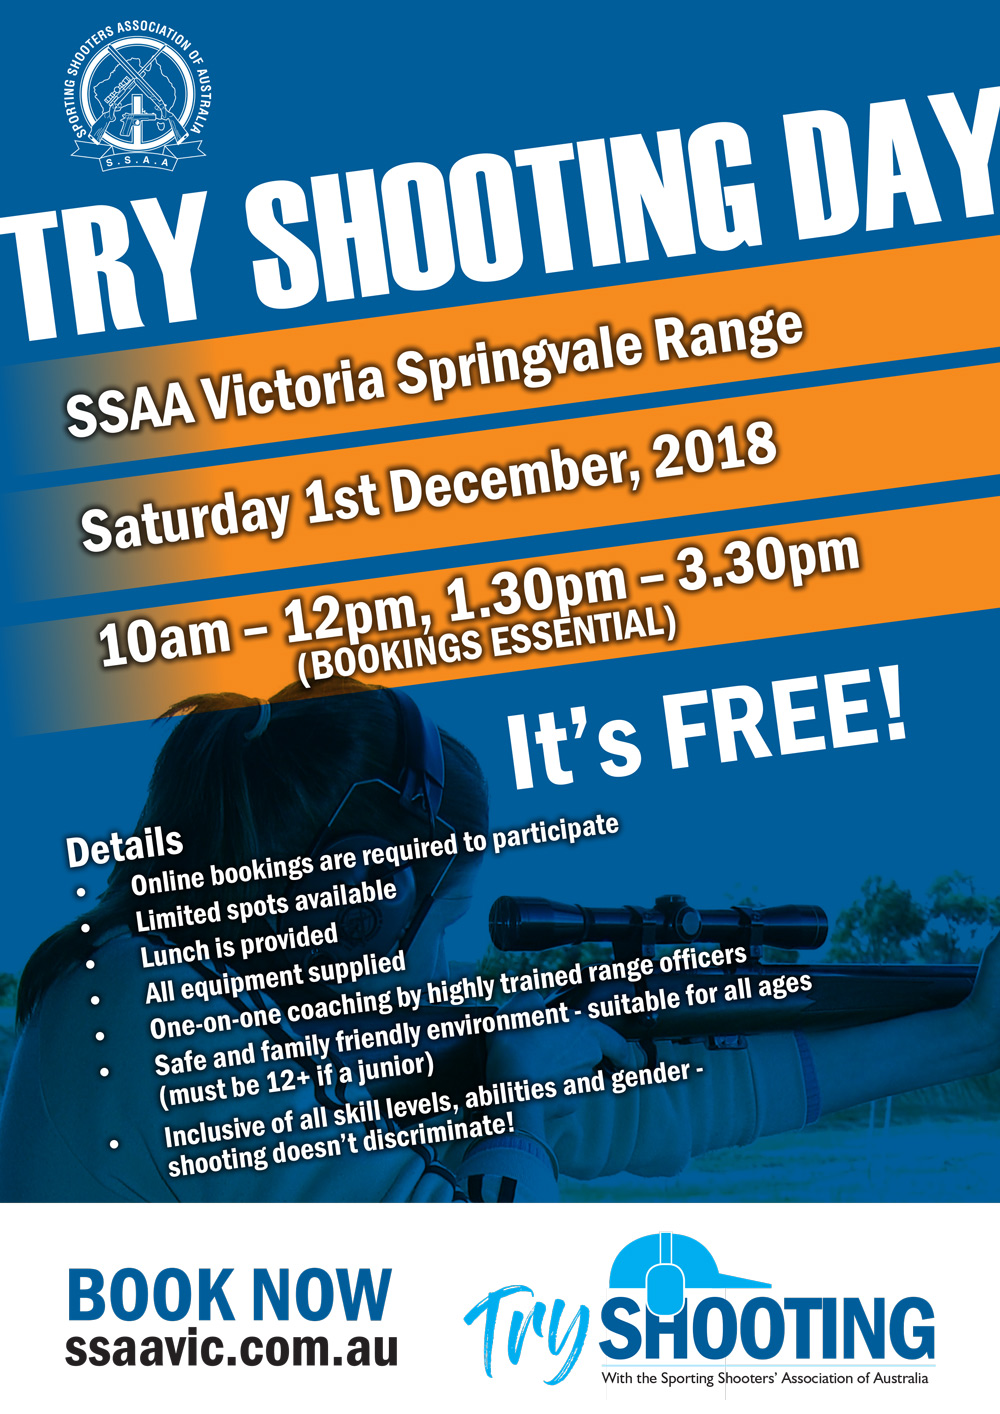 Try shooting for free at Springvale